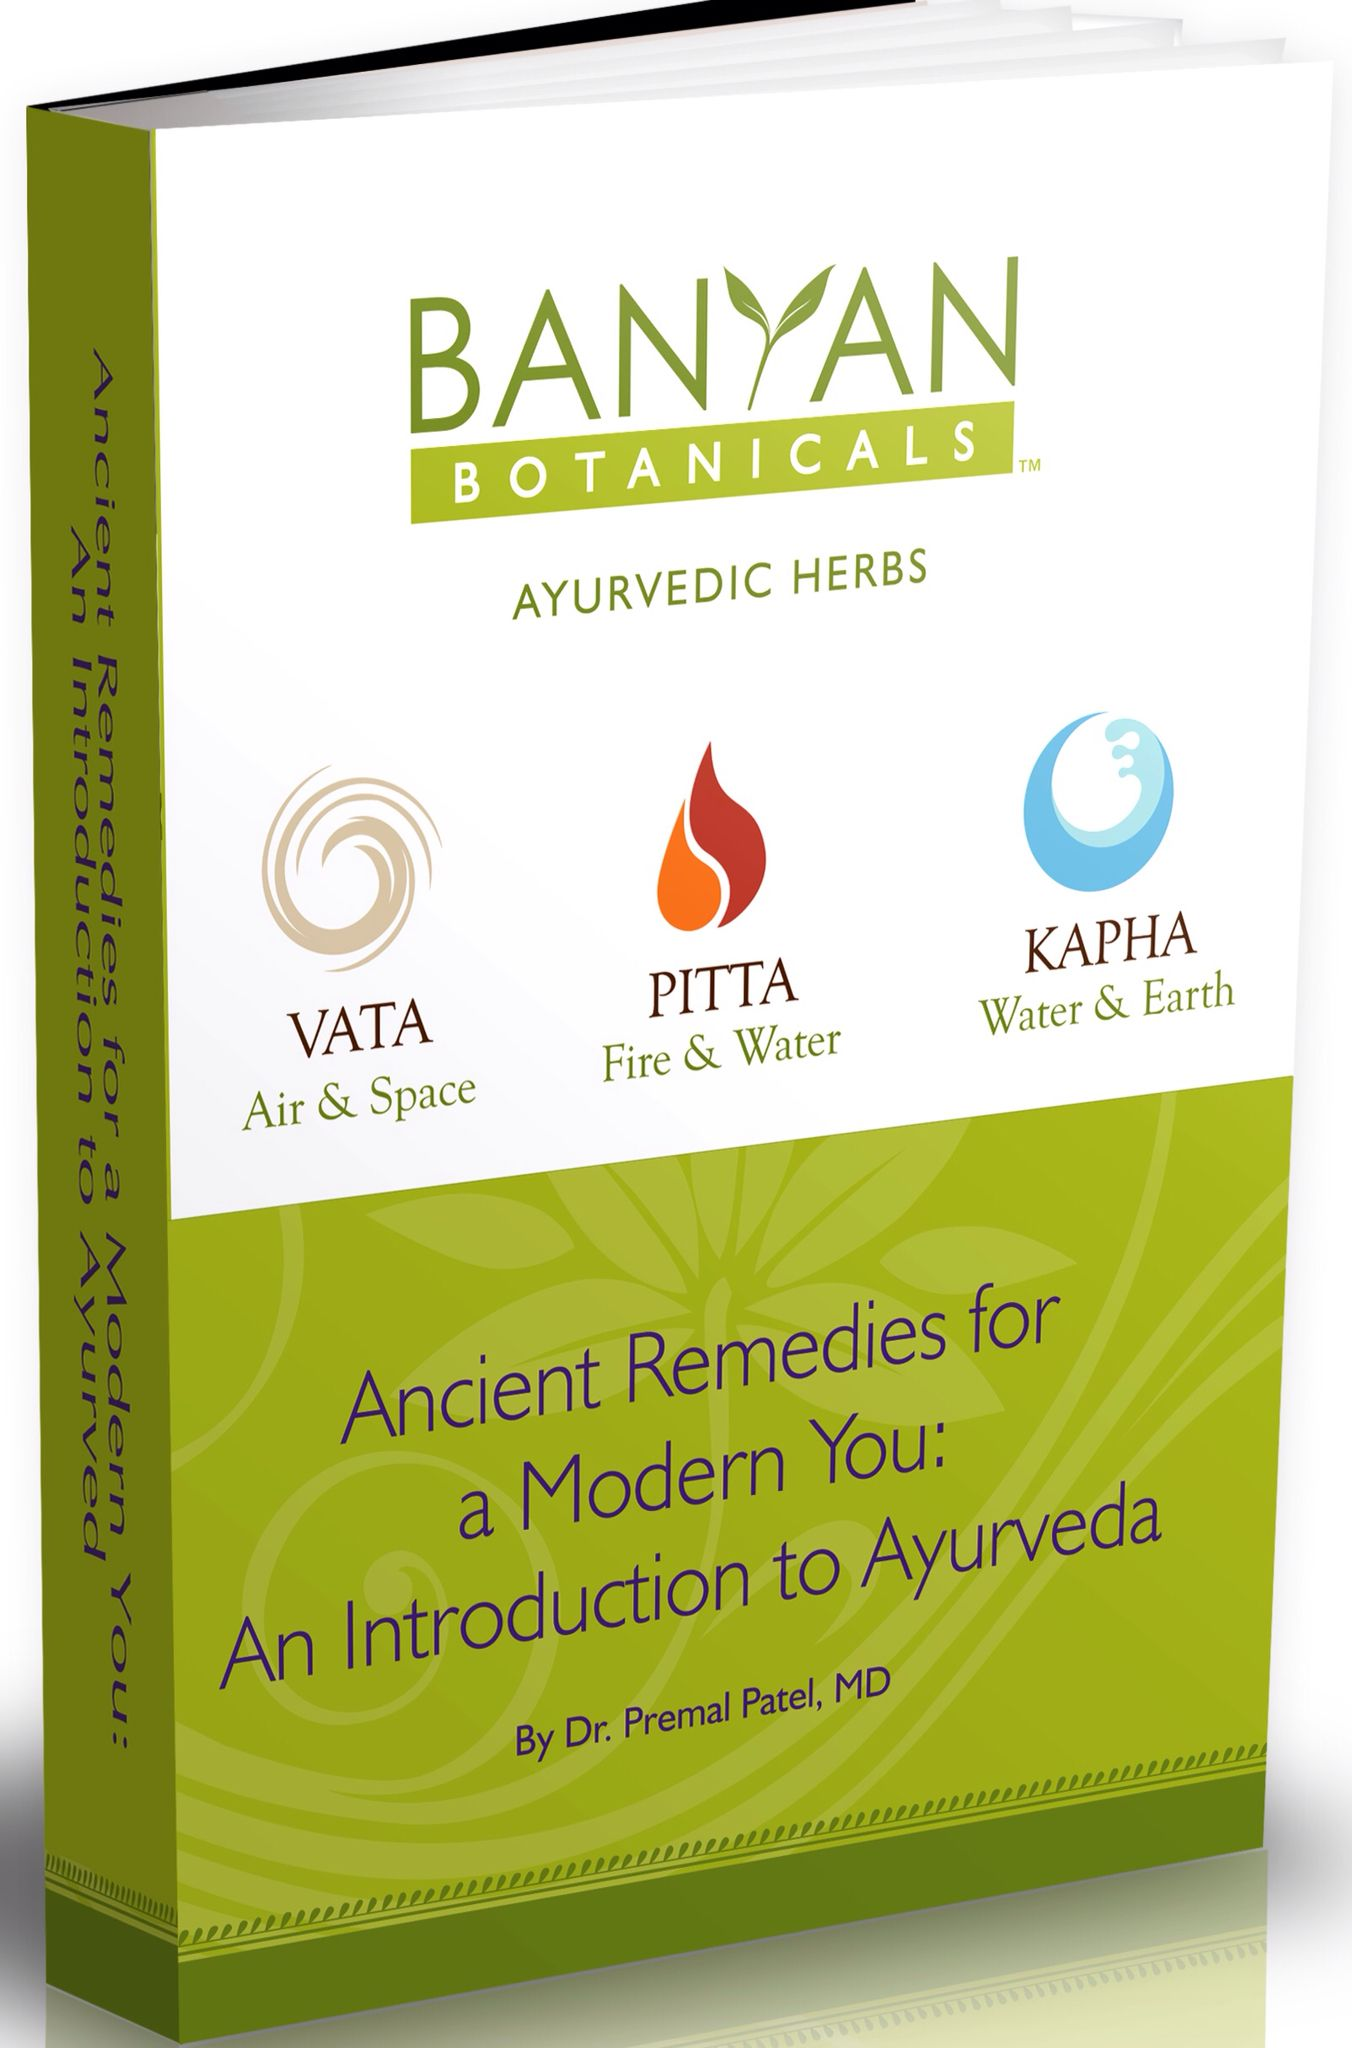 25+ The complete book of ayurvedic home remedies by vasant lad ideas